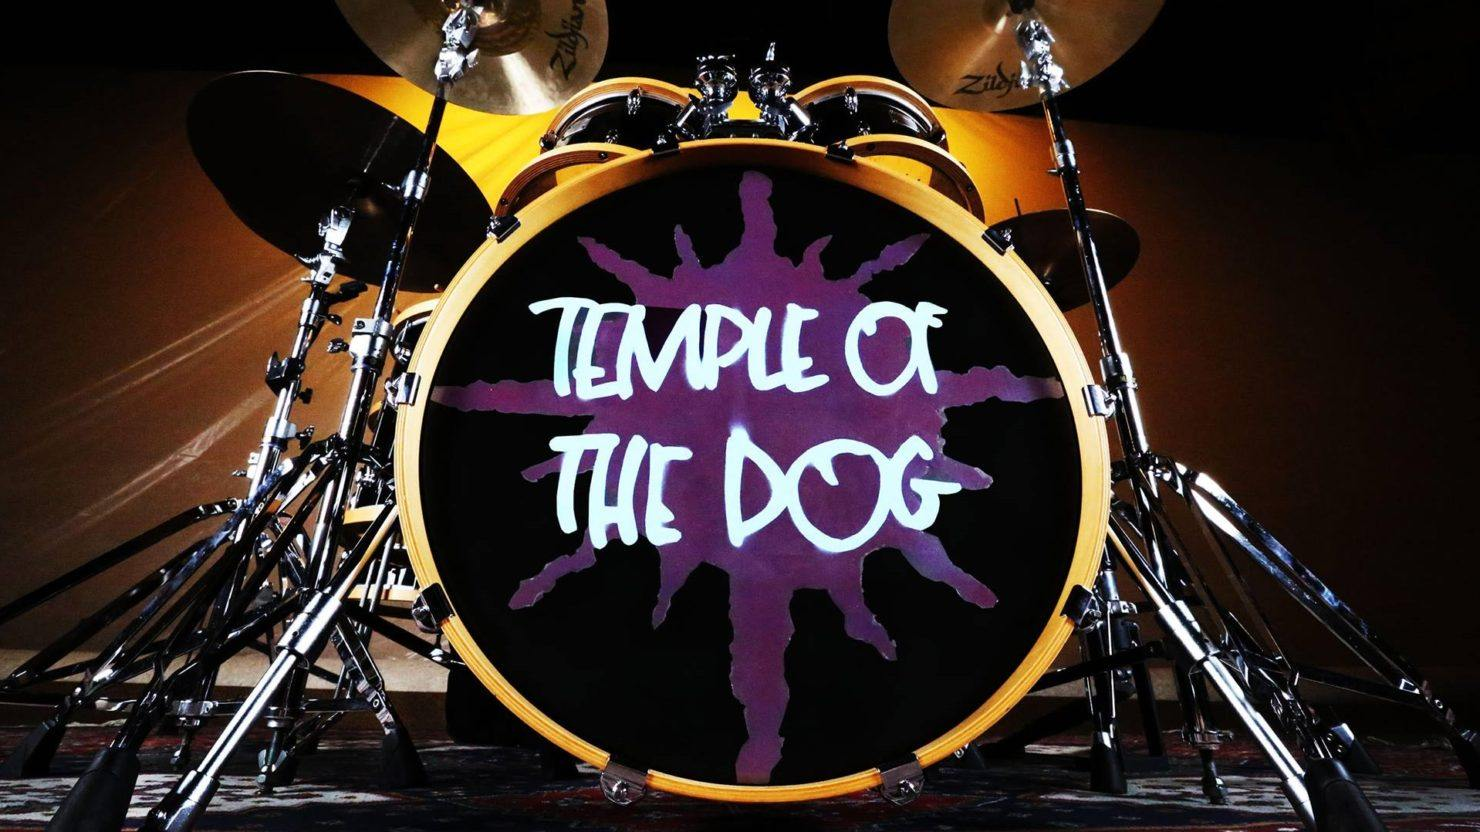 temple of the dog tour dates and concert tickets